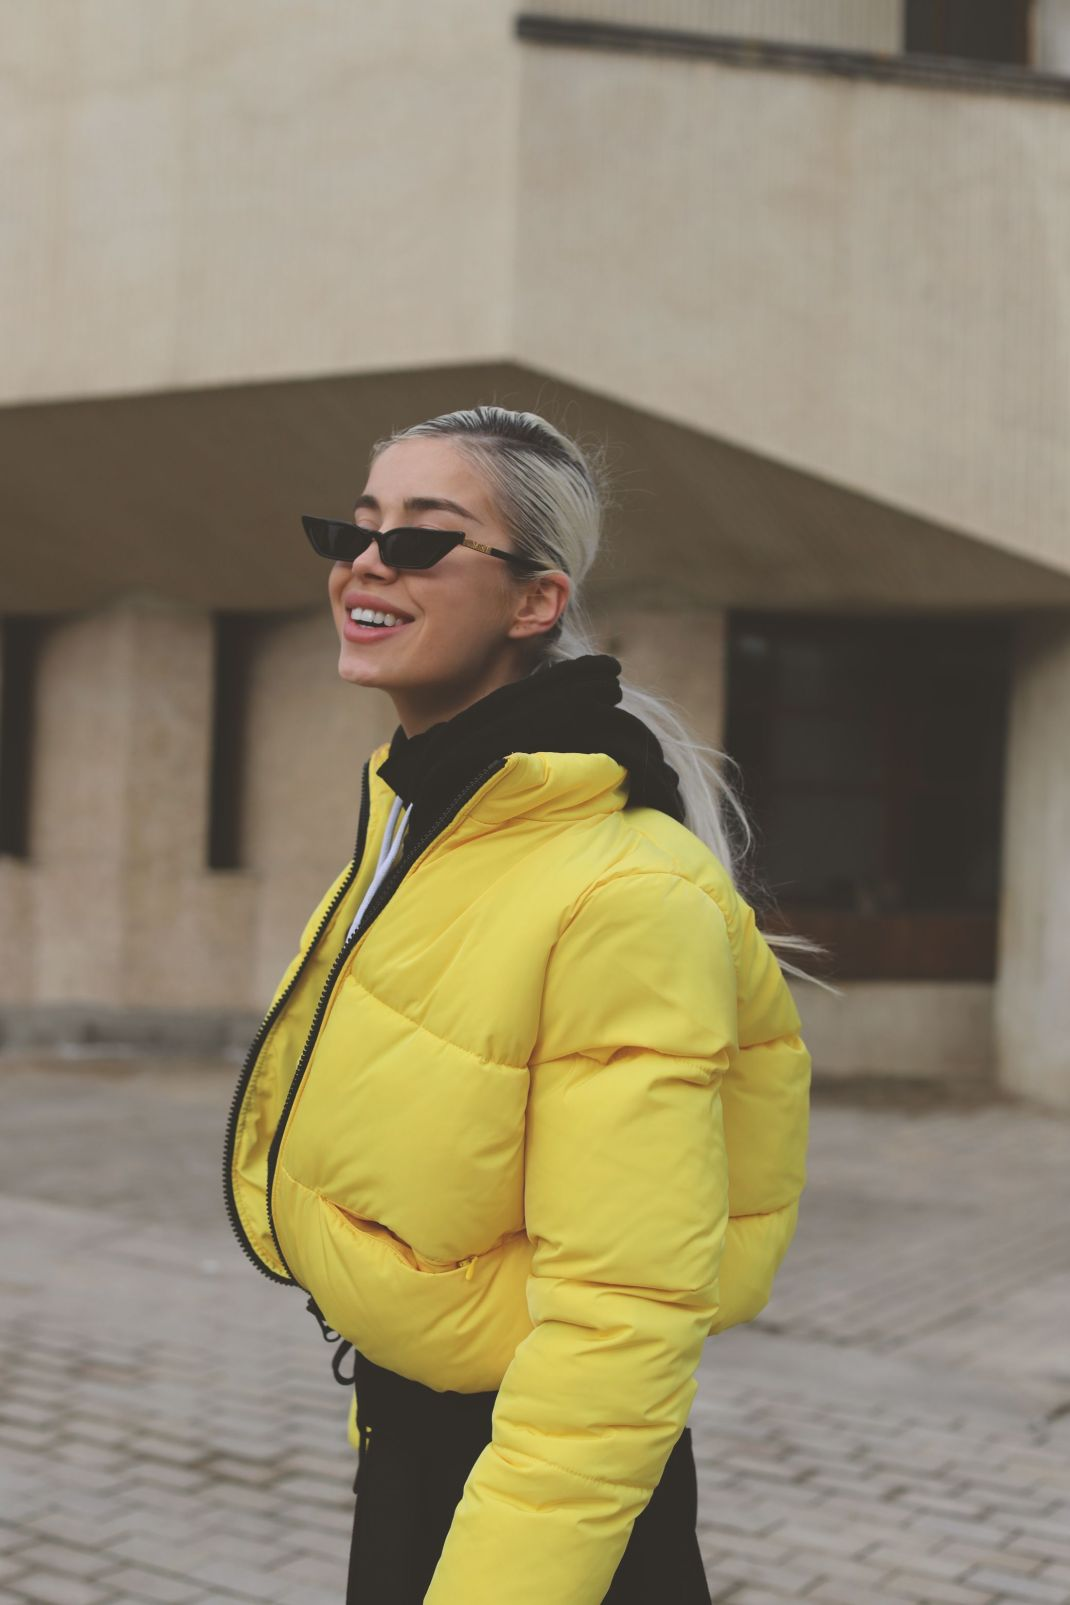 That yellow puffed jacket